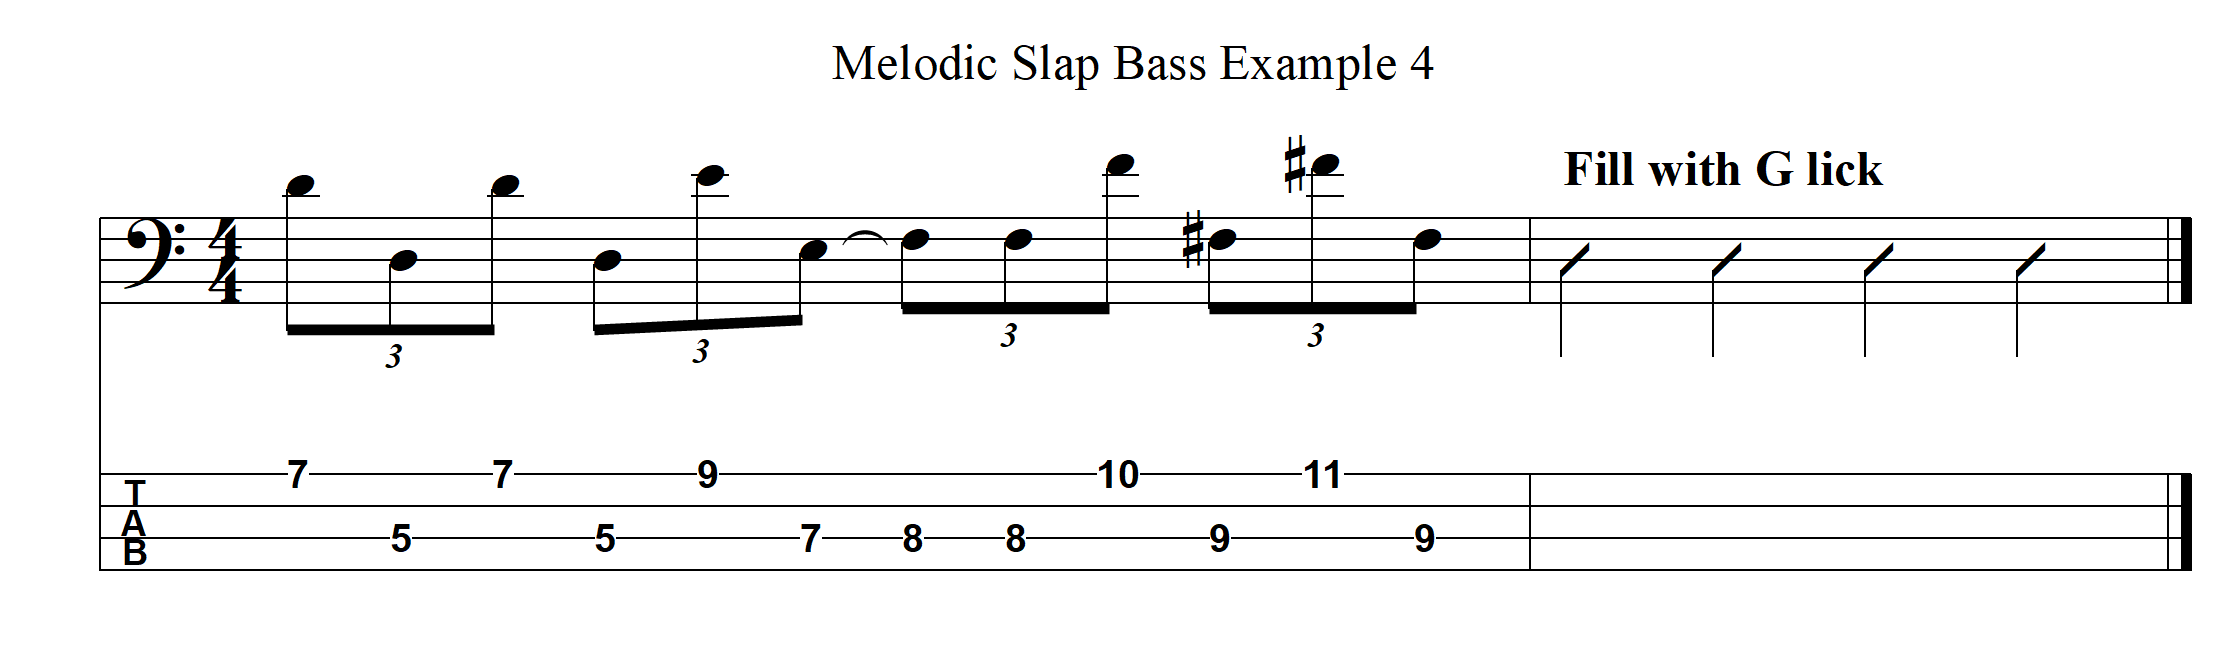 Melodic Slap Bass Example 4